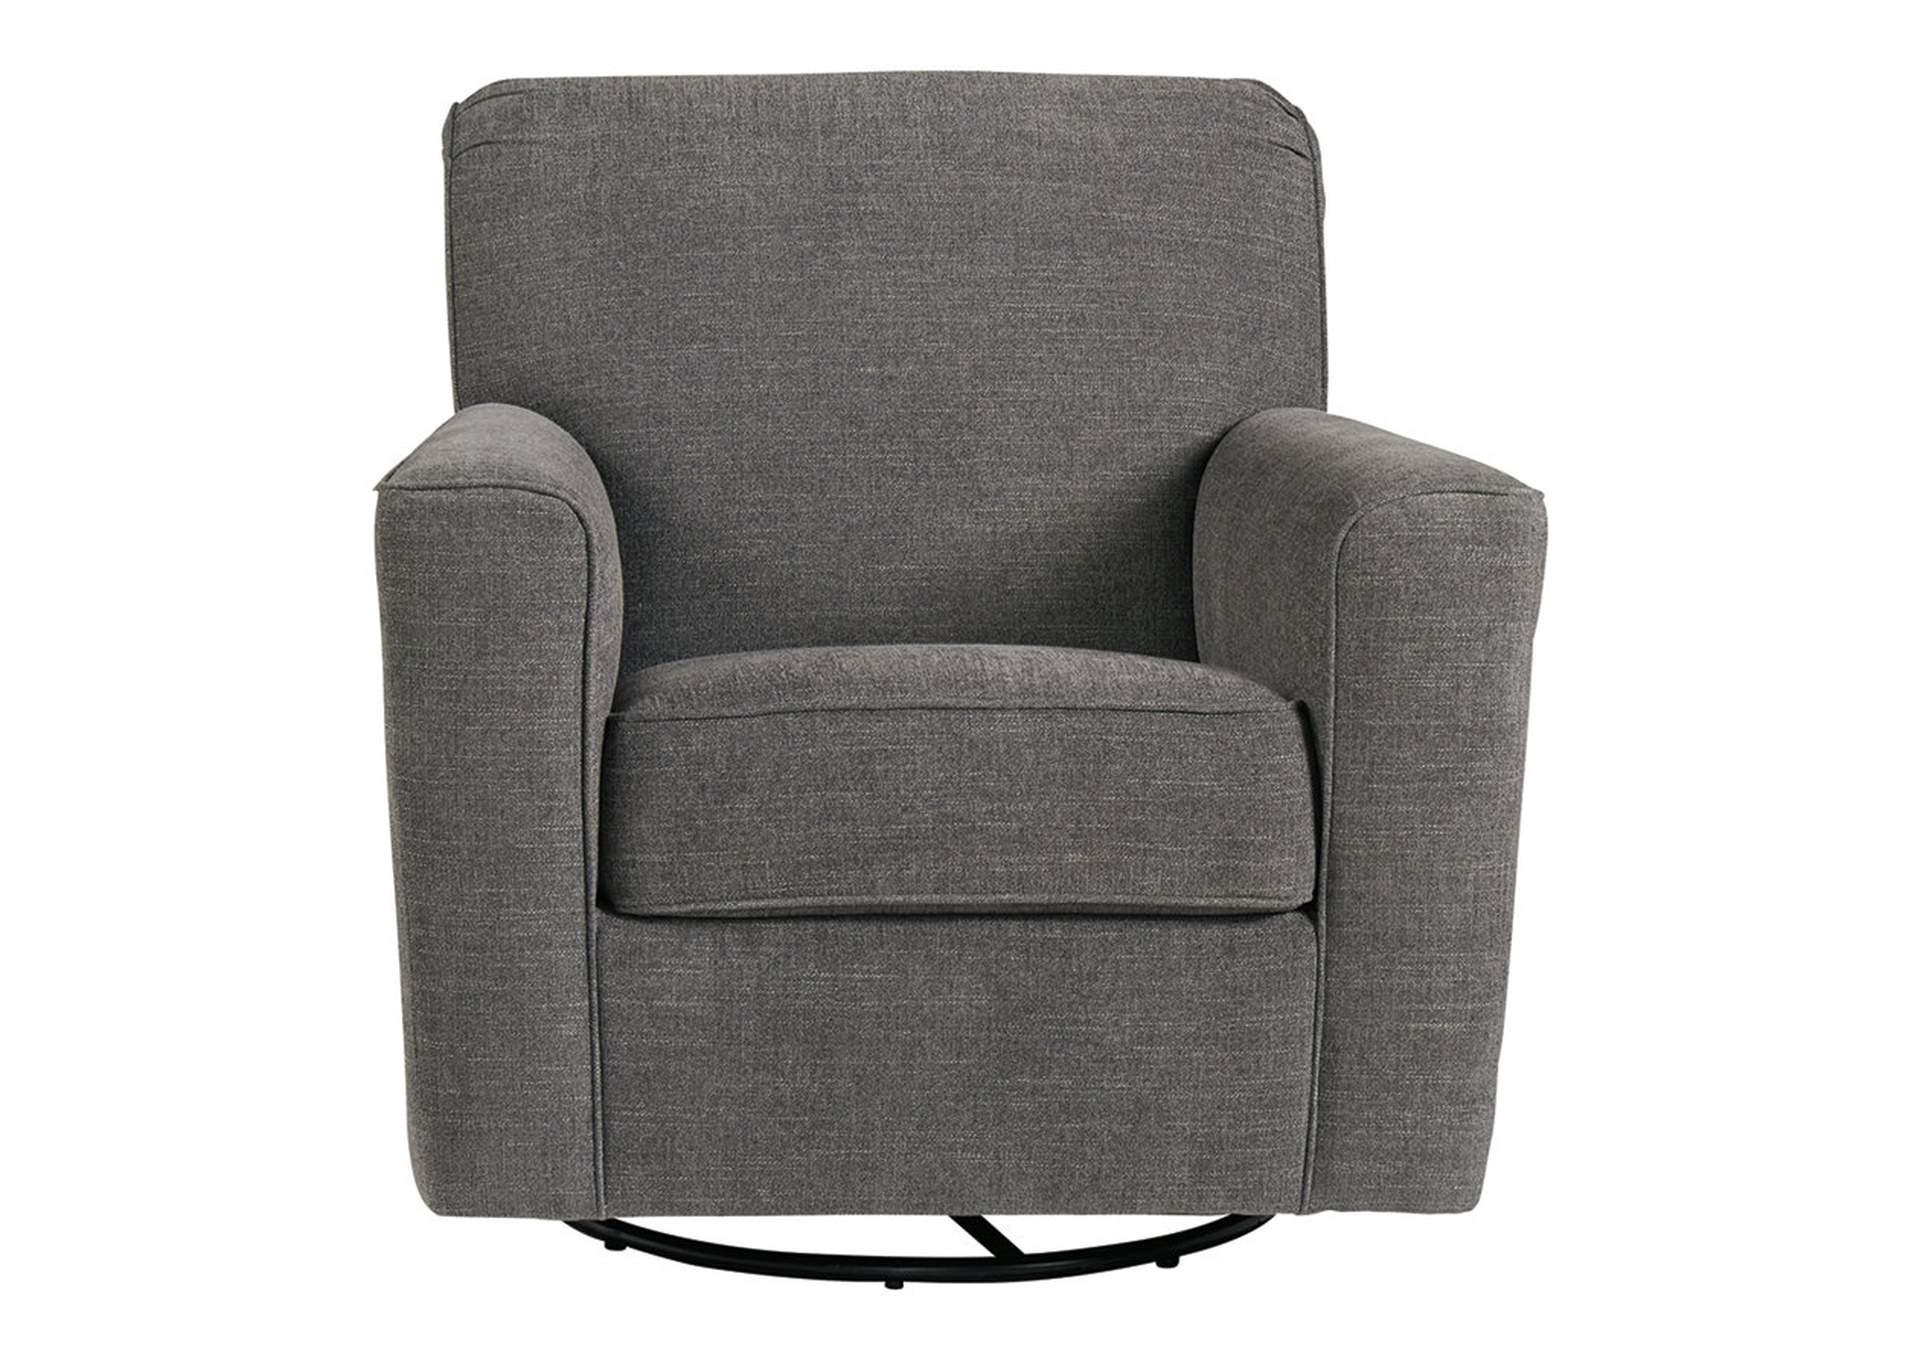 Alcona Charcoal Accent Chair,Ashley